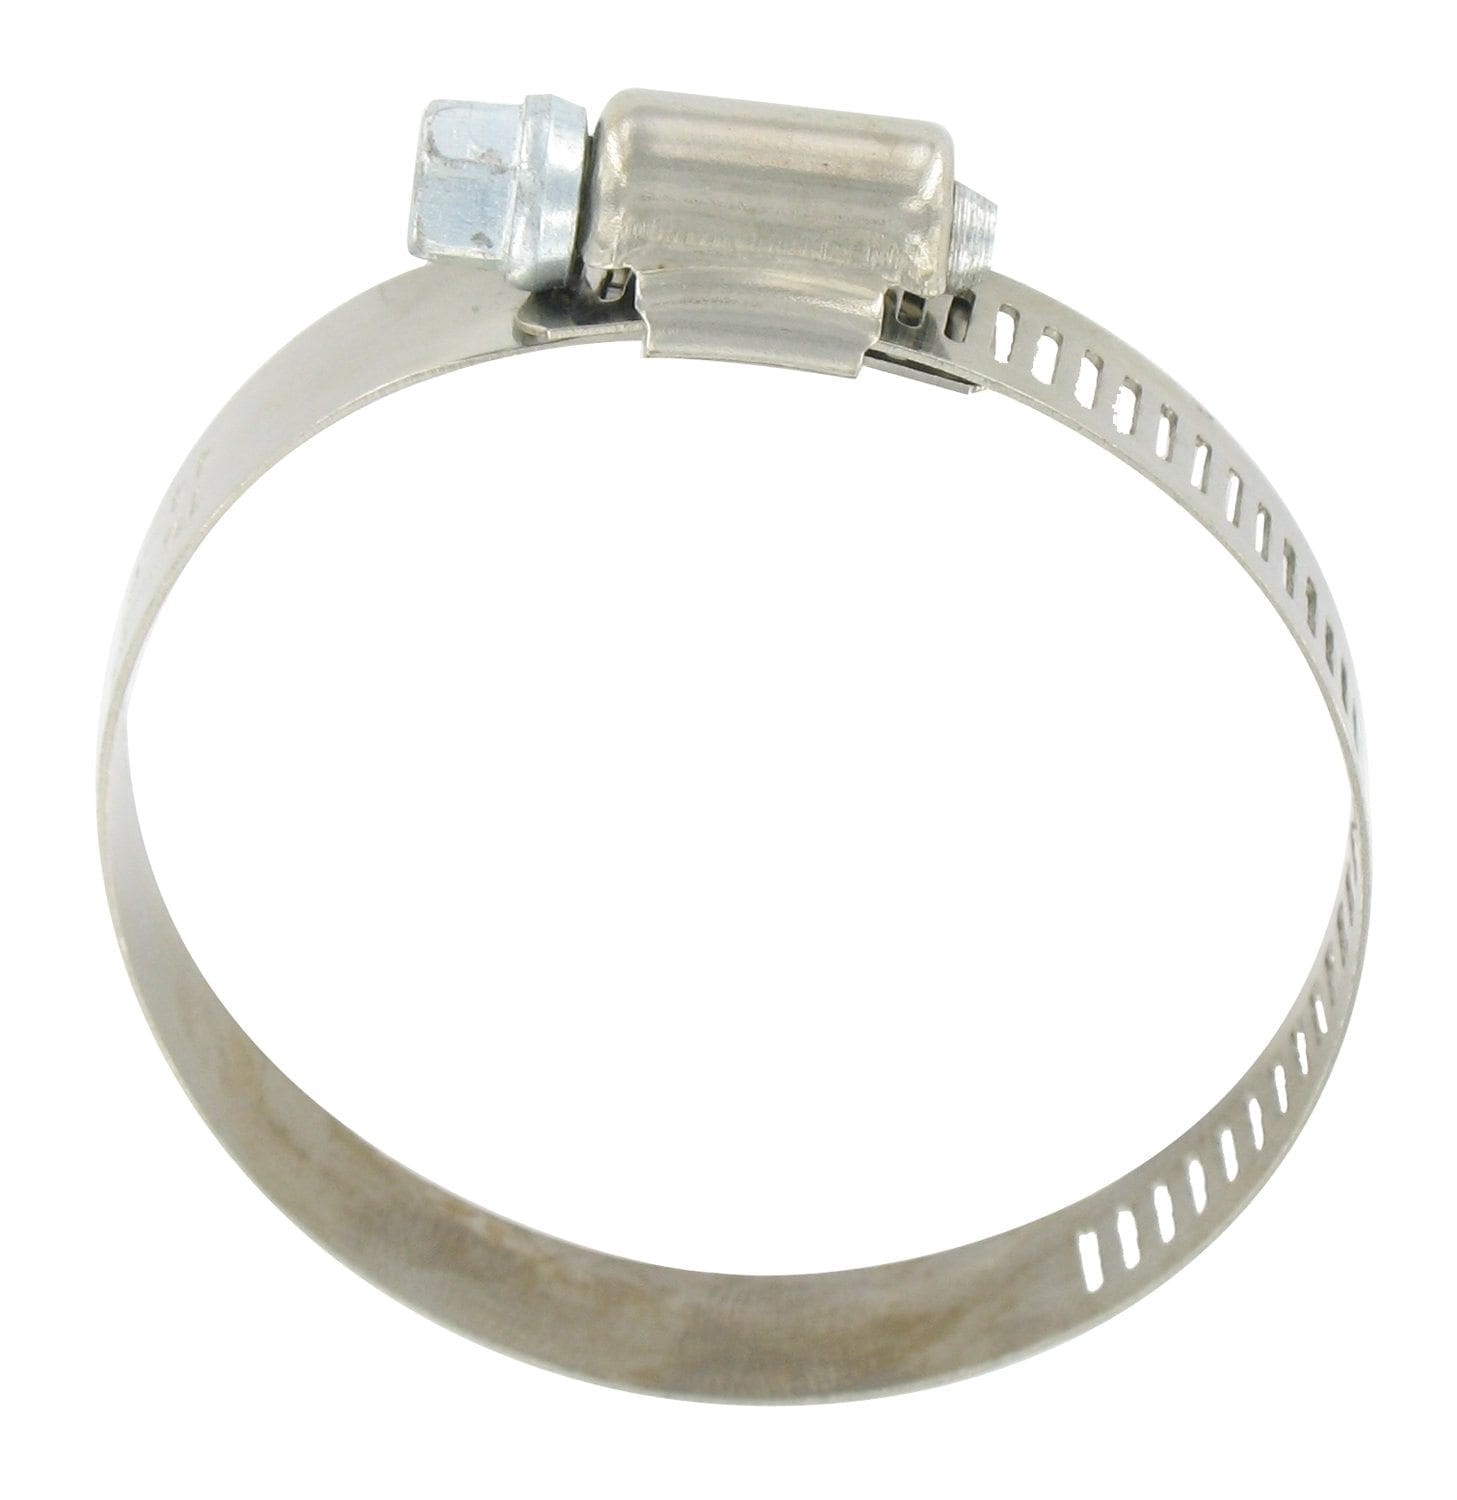 Hose clamp stainless steel quot bulk